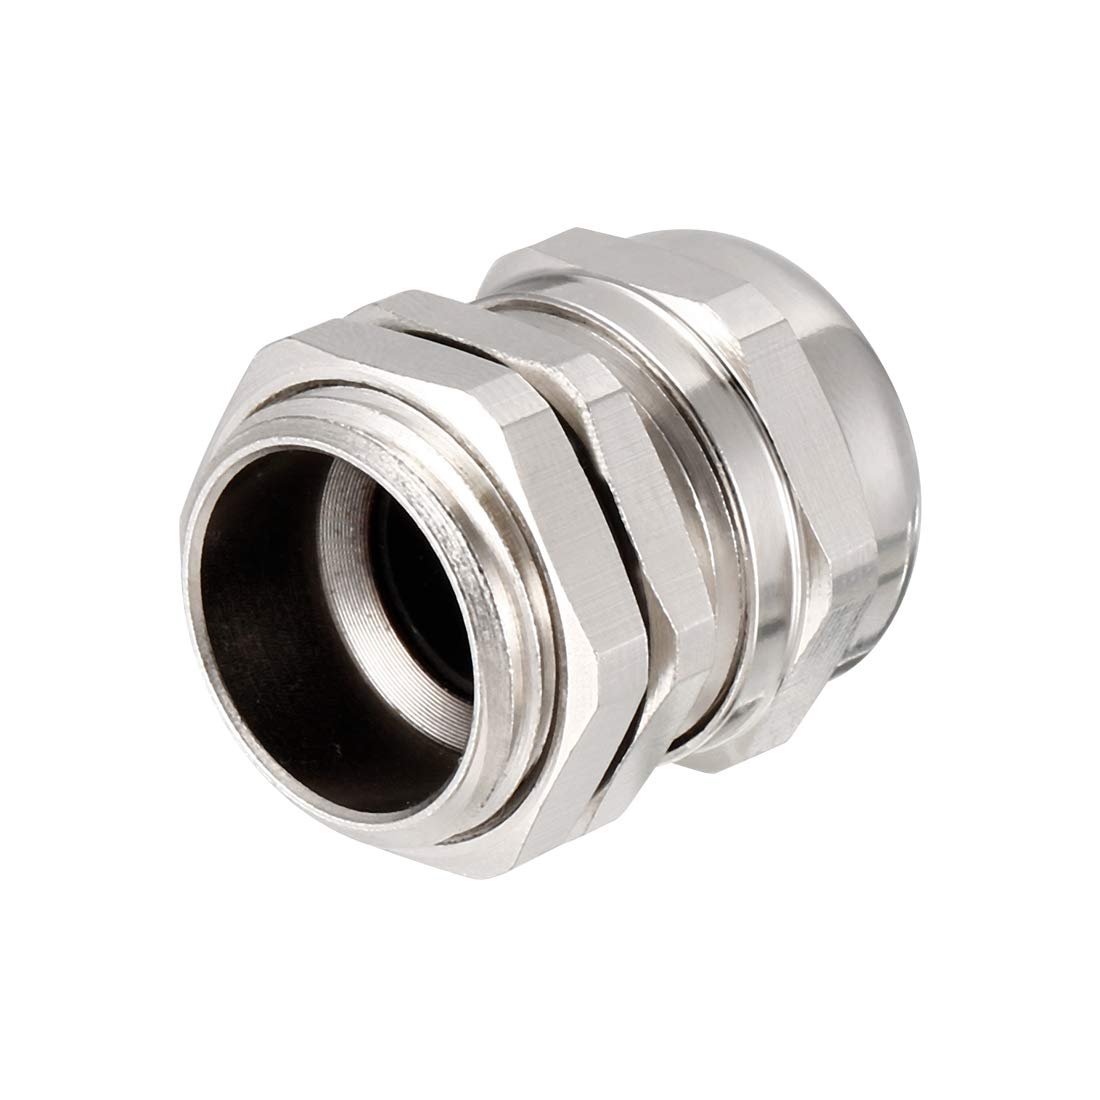 sourcing map 3Pcs M22 Cable Gland Metal Waterproof Connector Wire Glands Joints for 10mm-13mm Dia Range